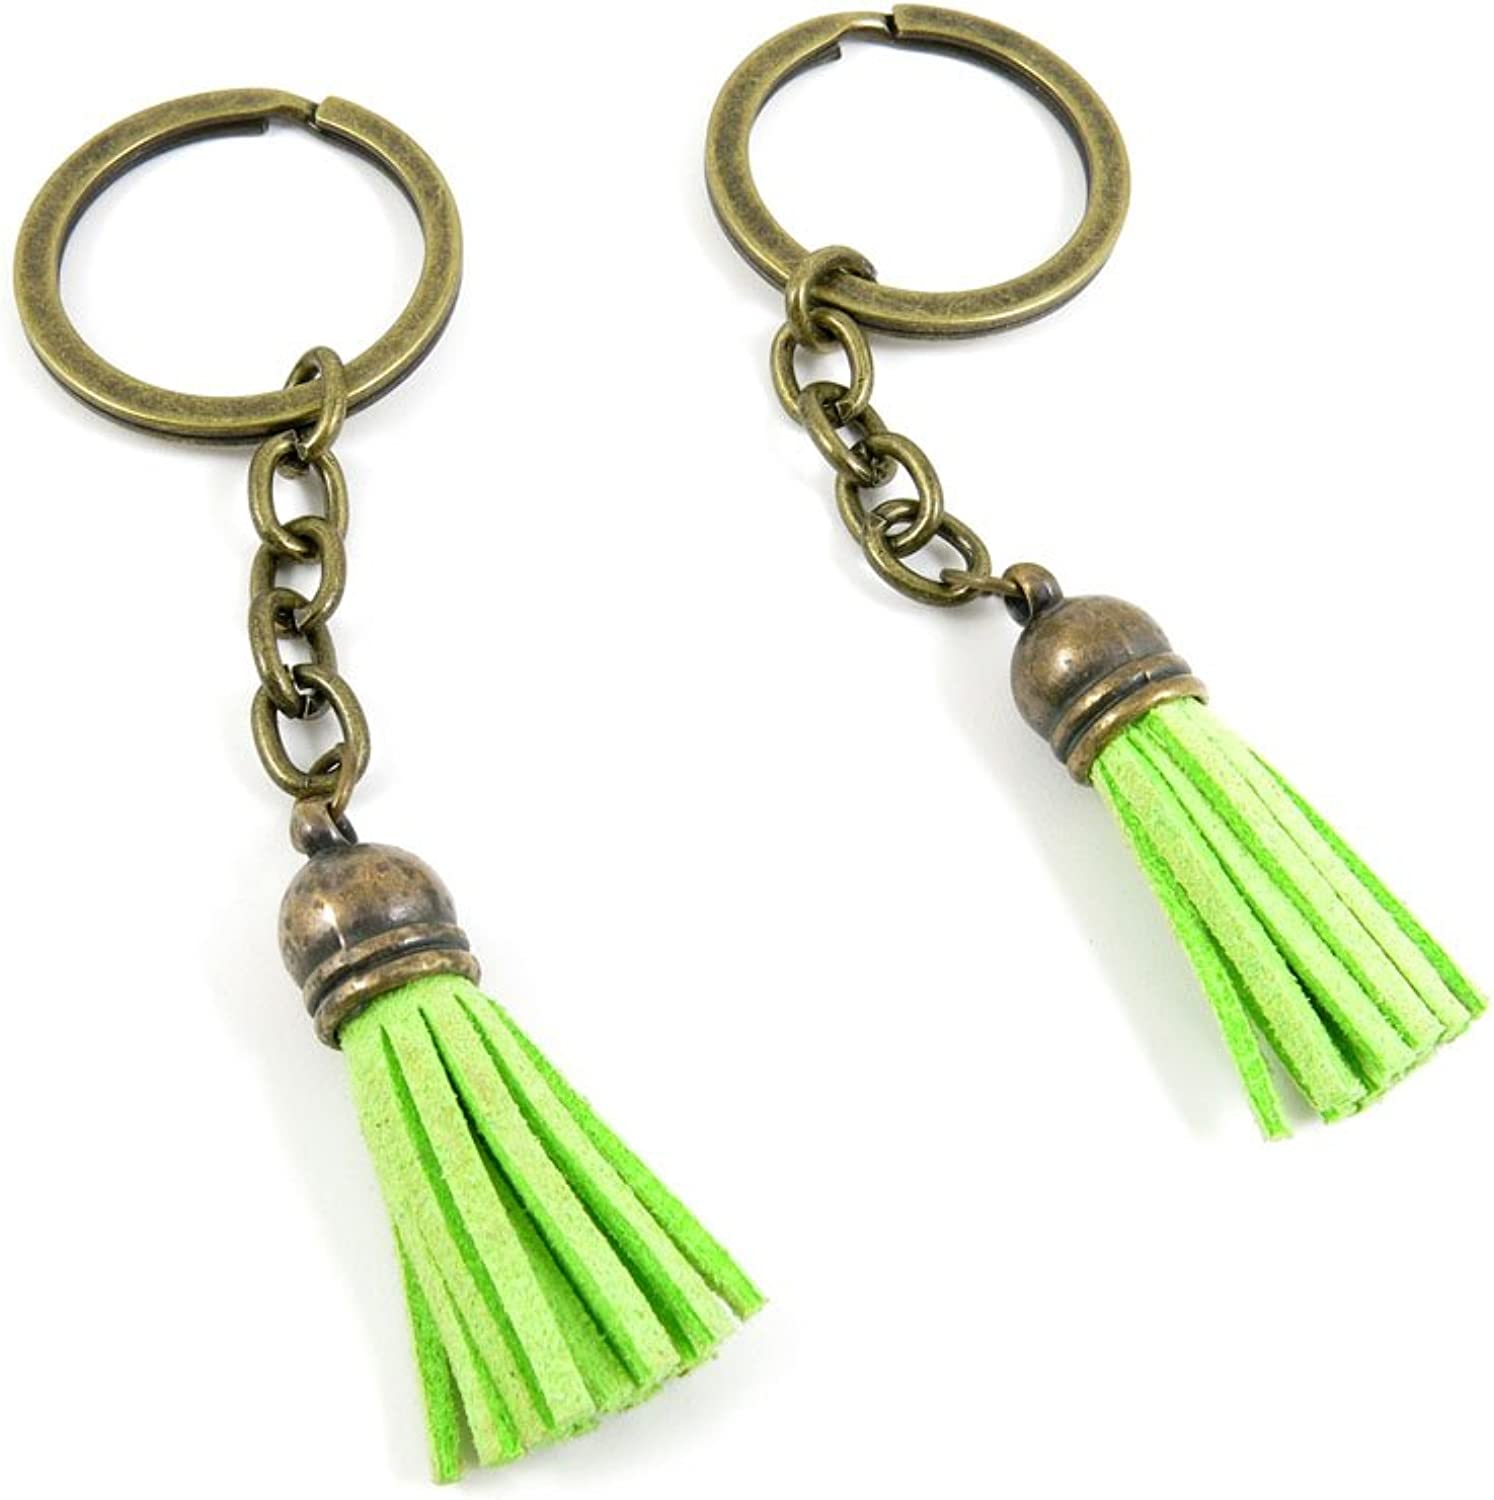 80 PCS Keyring Car Door Key Ring Tag Chain Keychain Wholesale Suppliers Charms Handmade H4CJ3 Pale Green Tassels